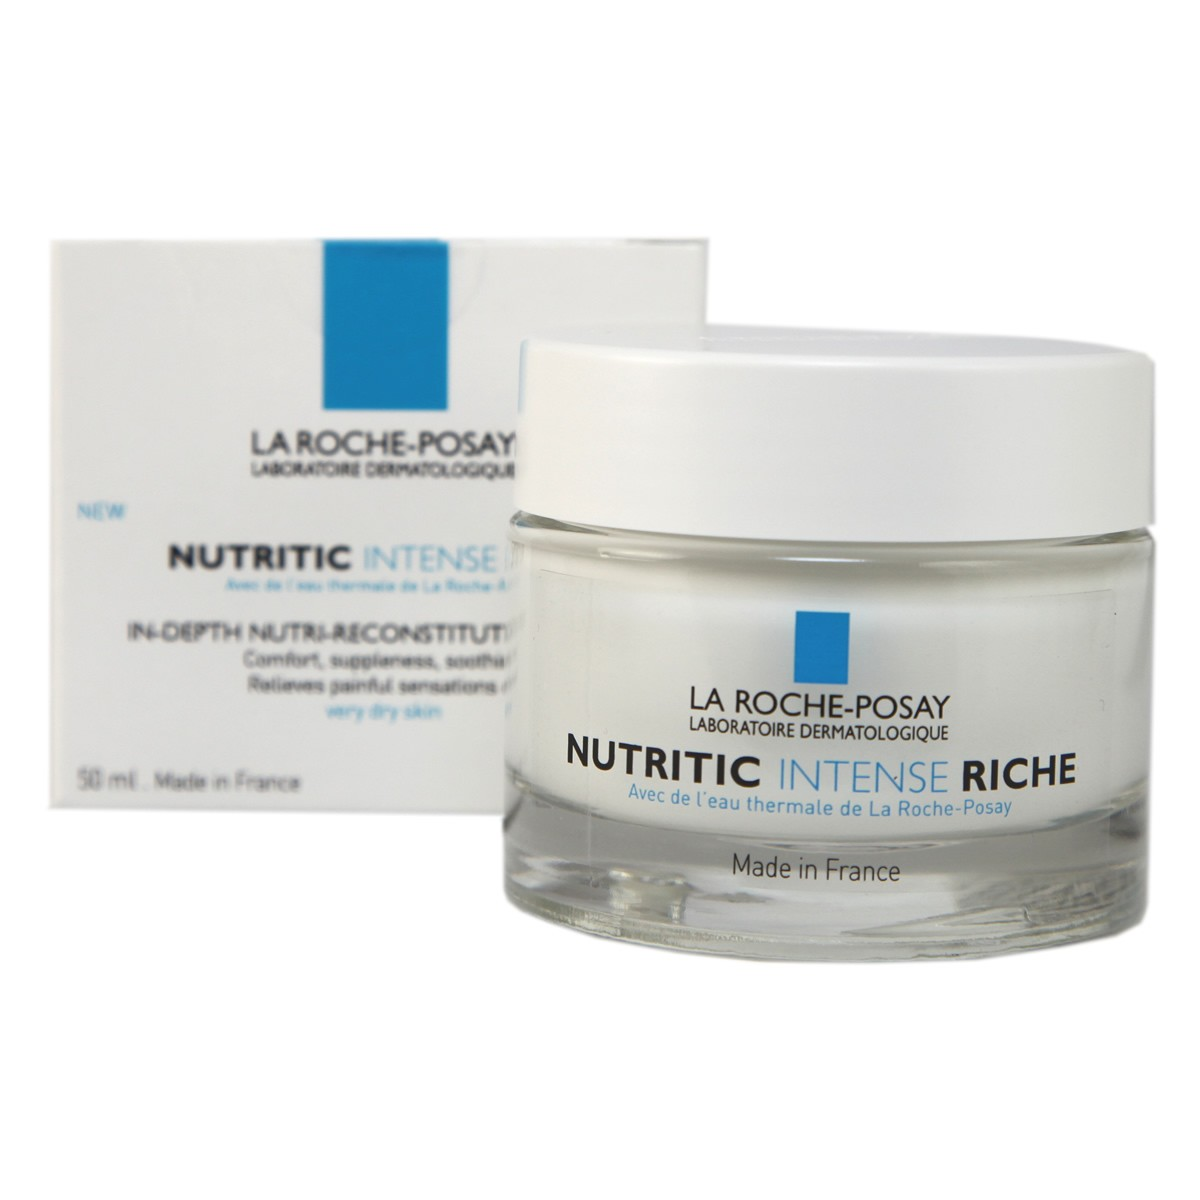 La Roche Posay Nutritic Intense Richе